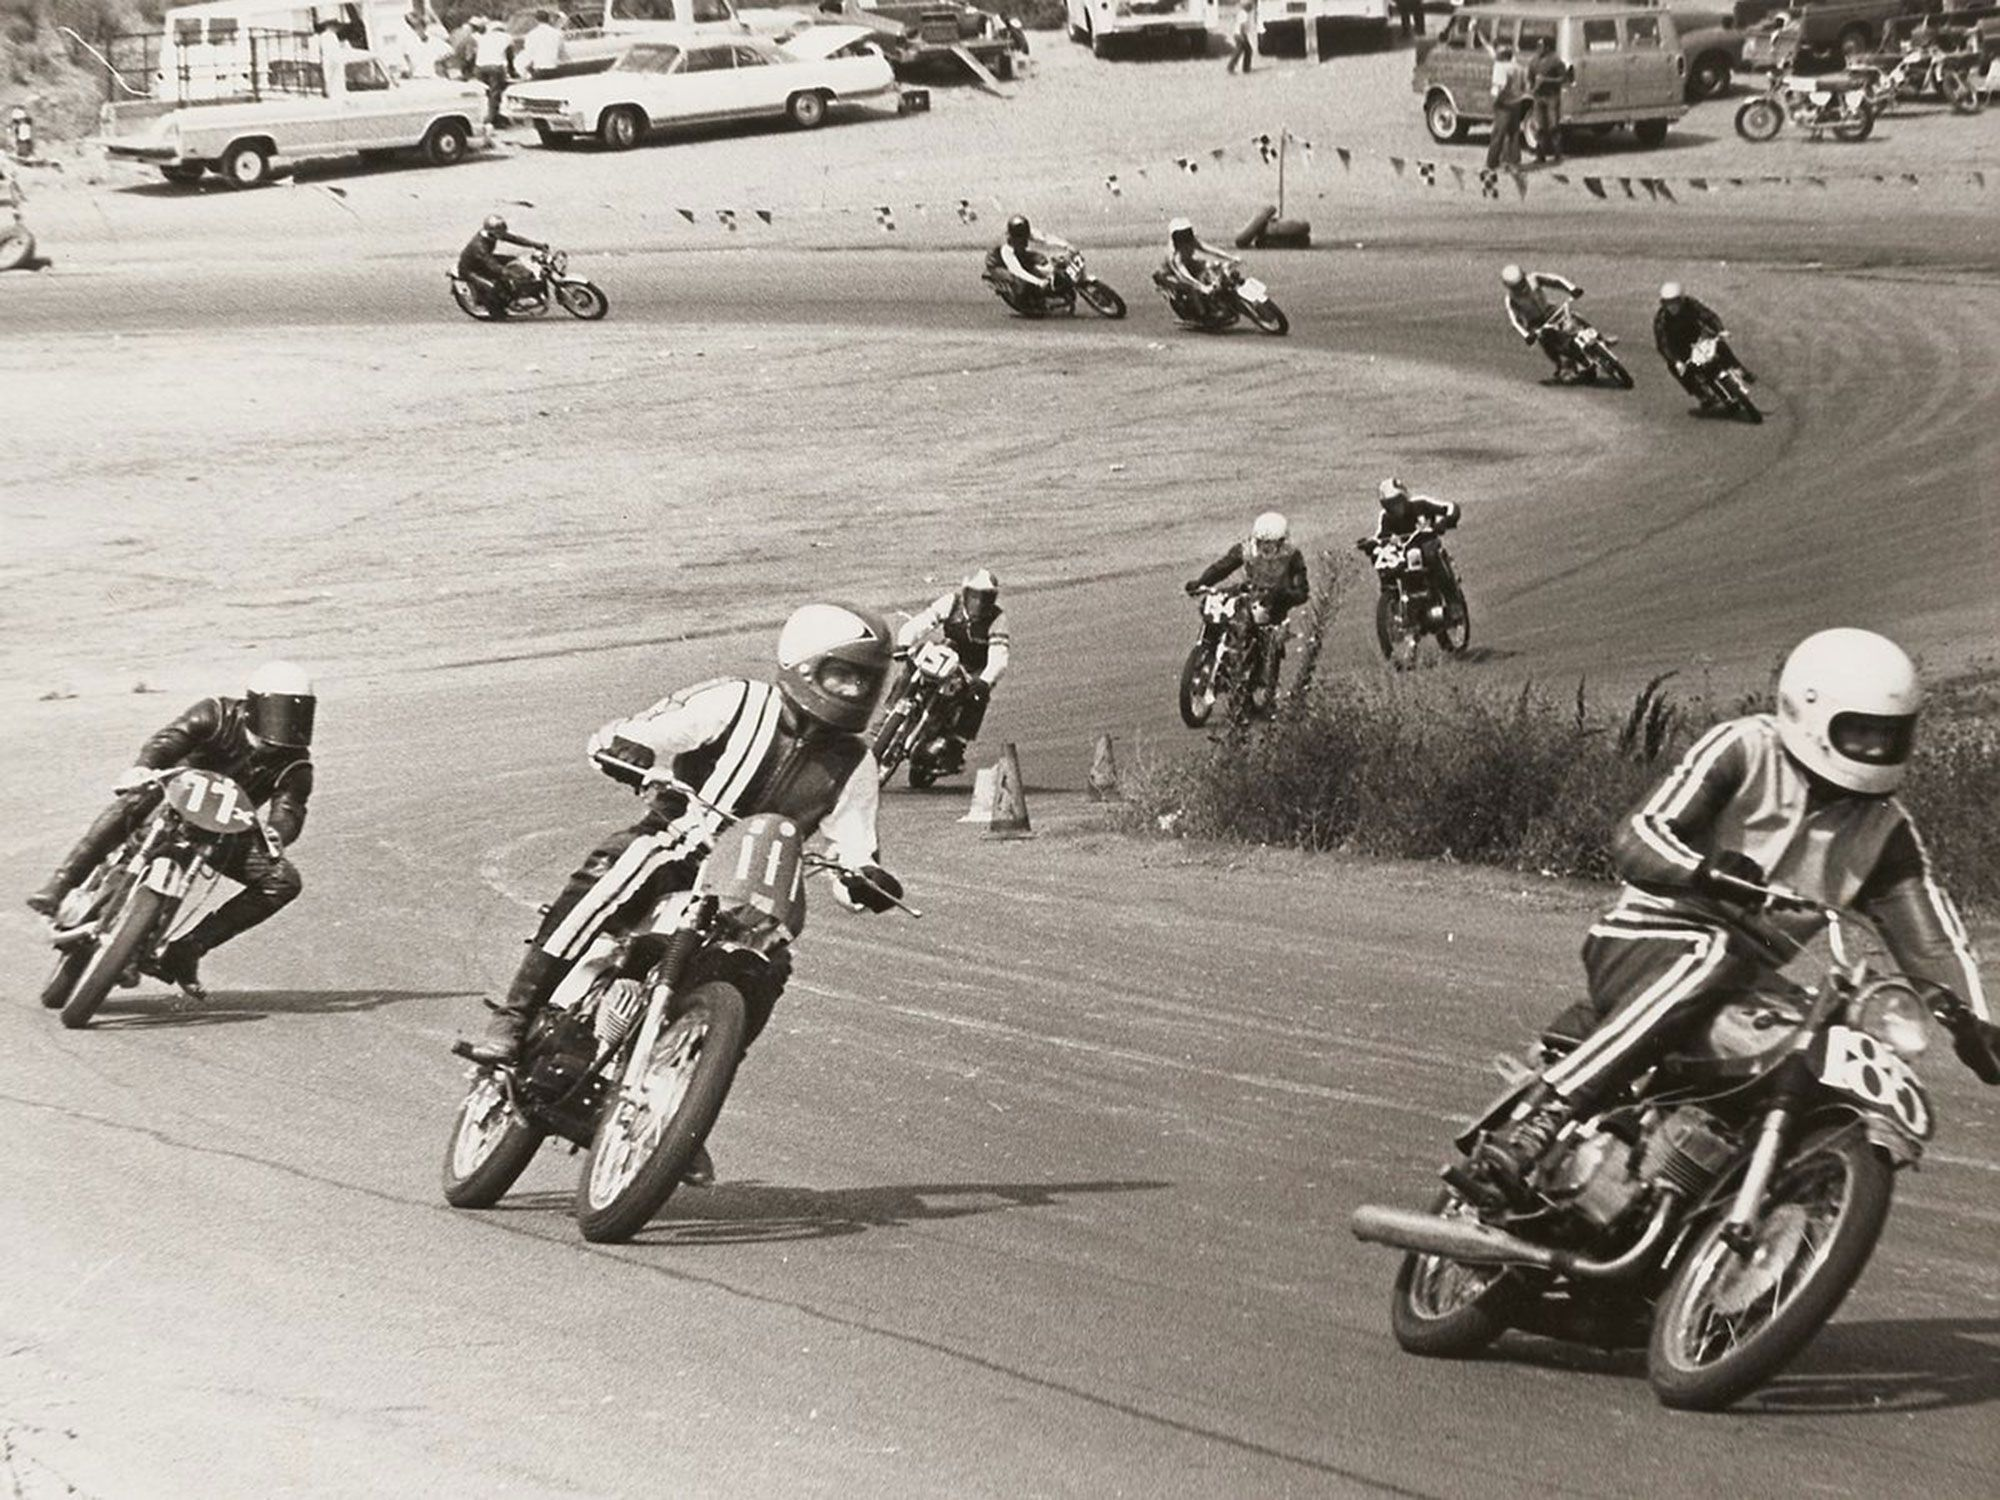 By the early 1970s, more powerful motorcycles were starting to overwhelm the narrow-profile, skinny tires of the day